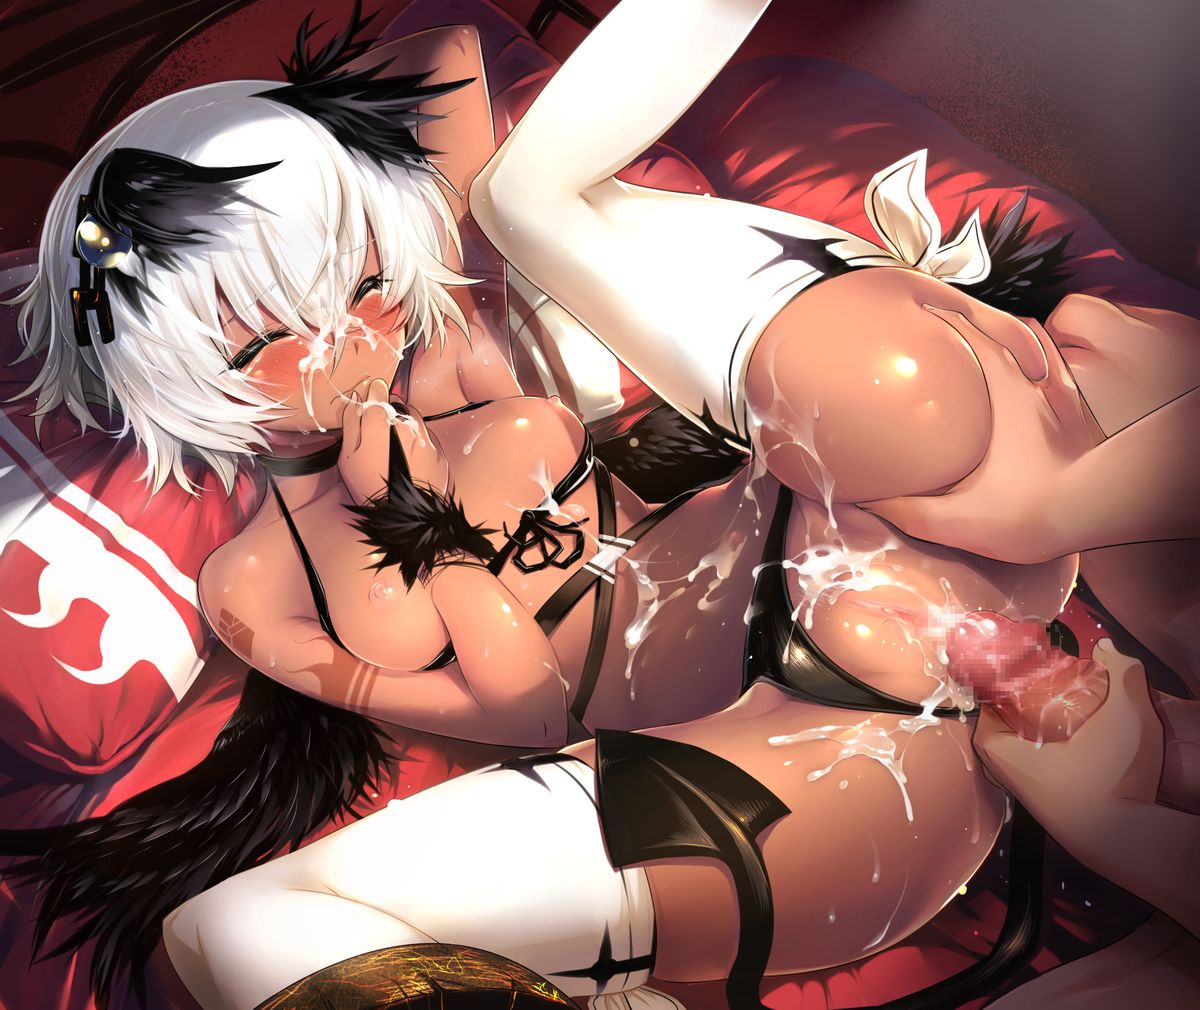 Hentai uncensored sex demons dark skin videos sex thumbs